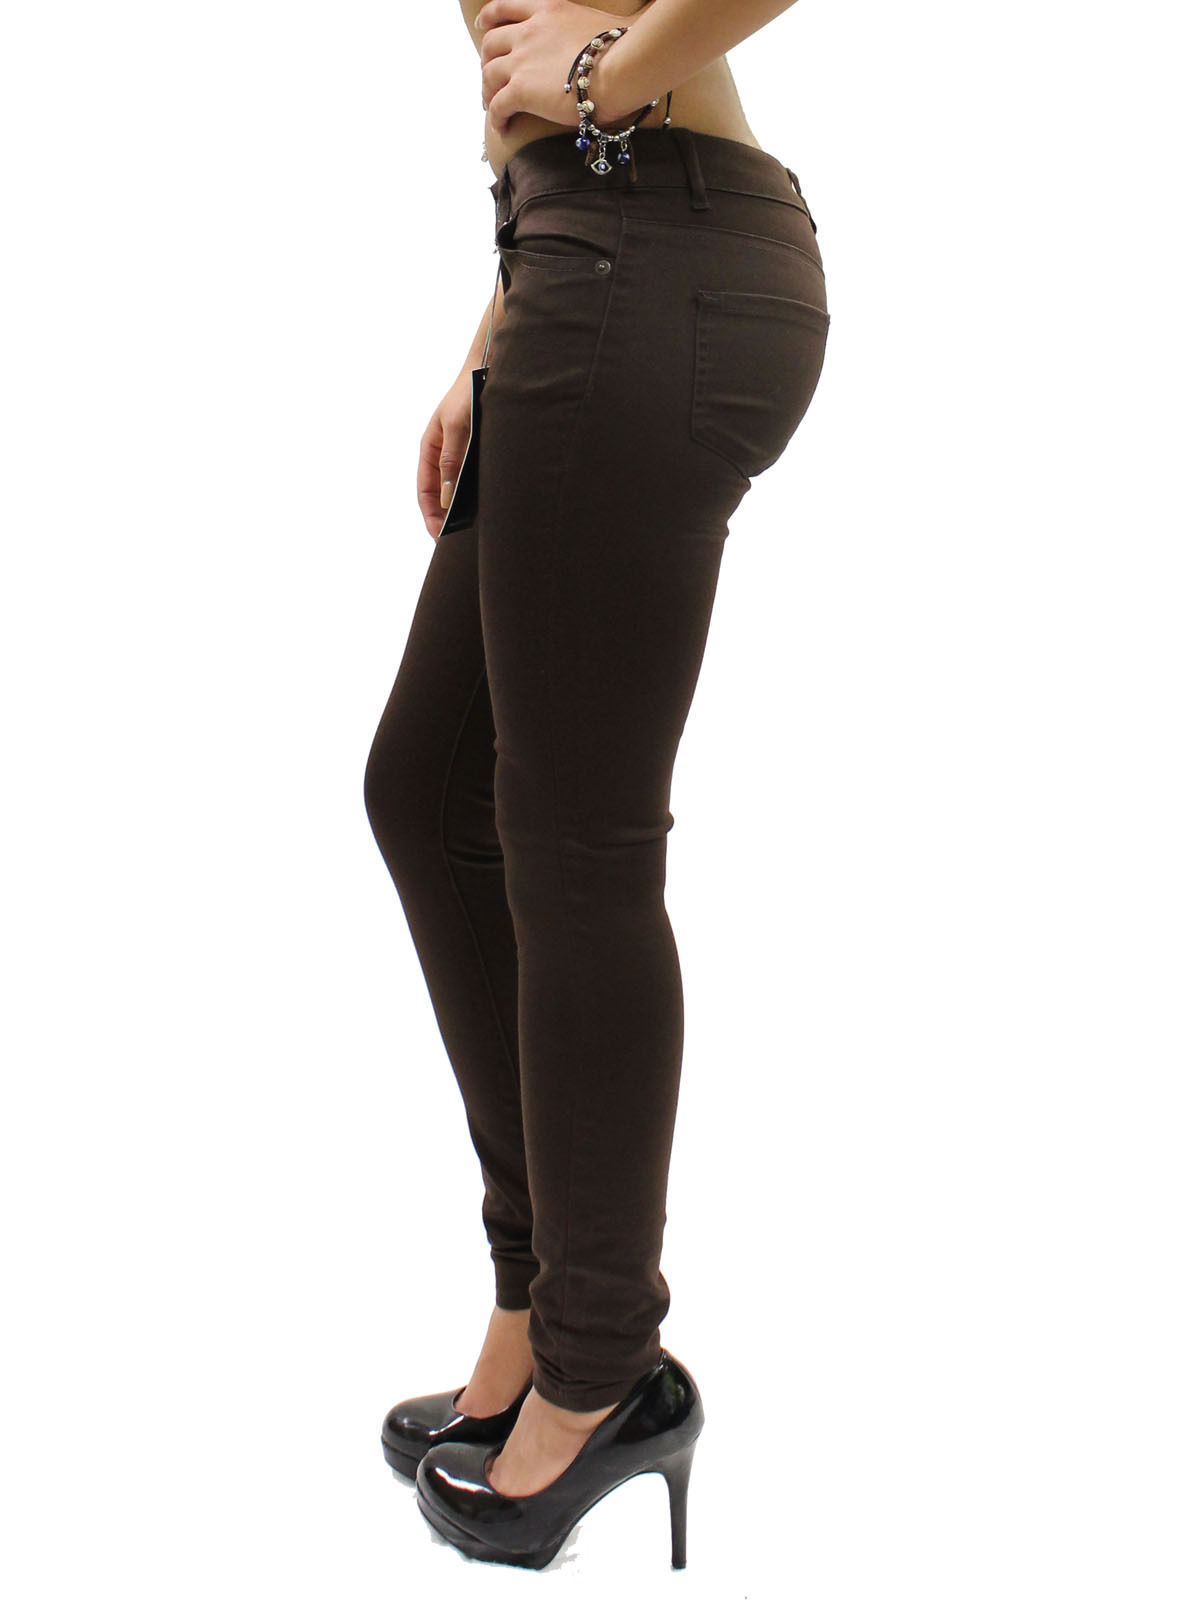 Free shipping BOTH ways on brown skinny jeans for women, from our vast selection of styles. Fast delivery, and 24/7/ real-person service with a smile. Click or call